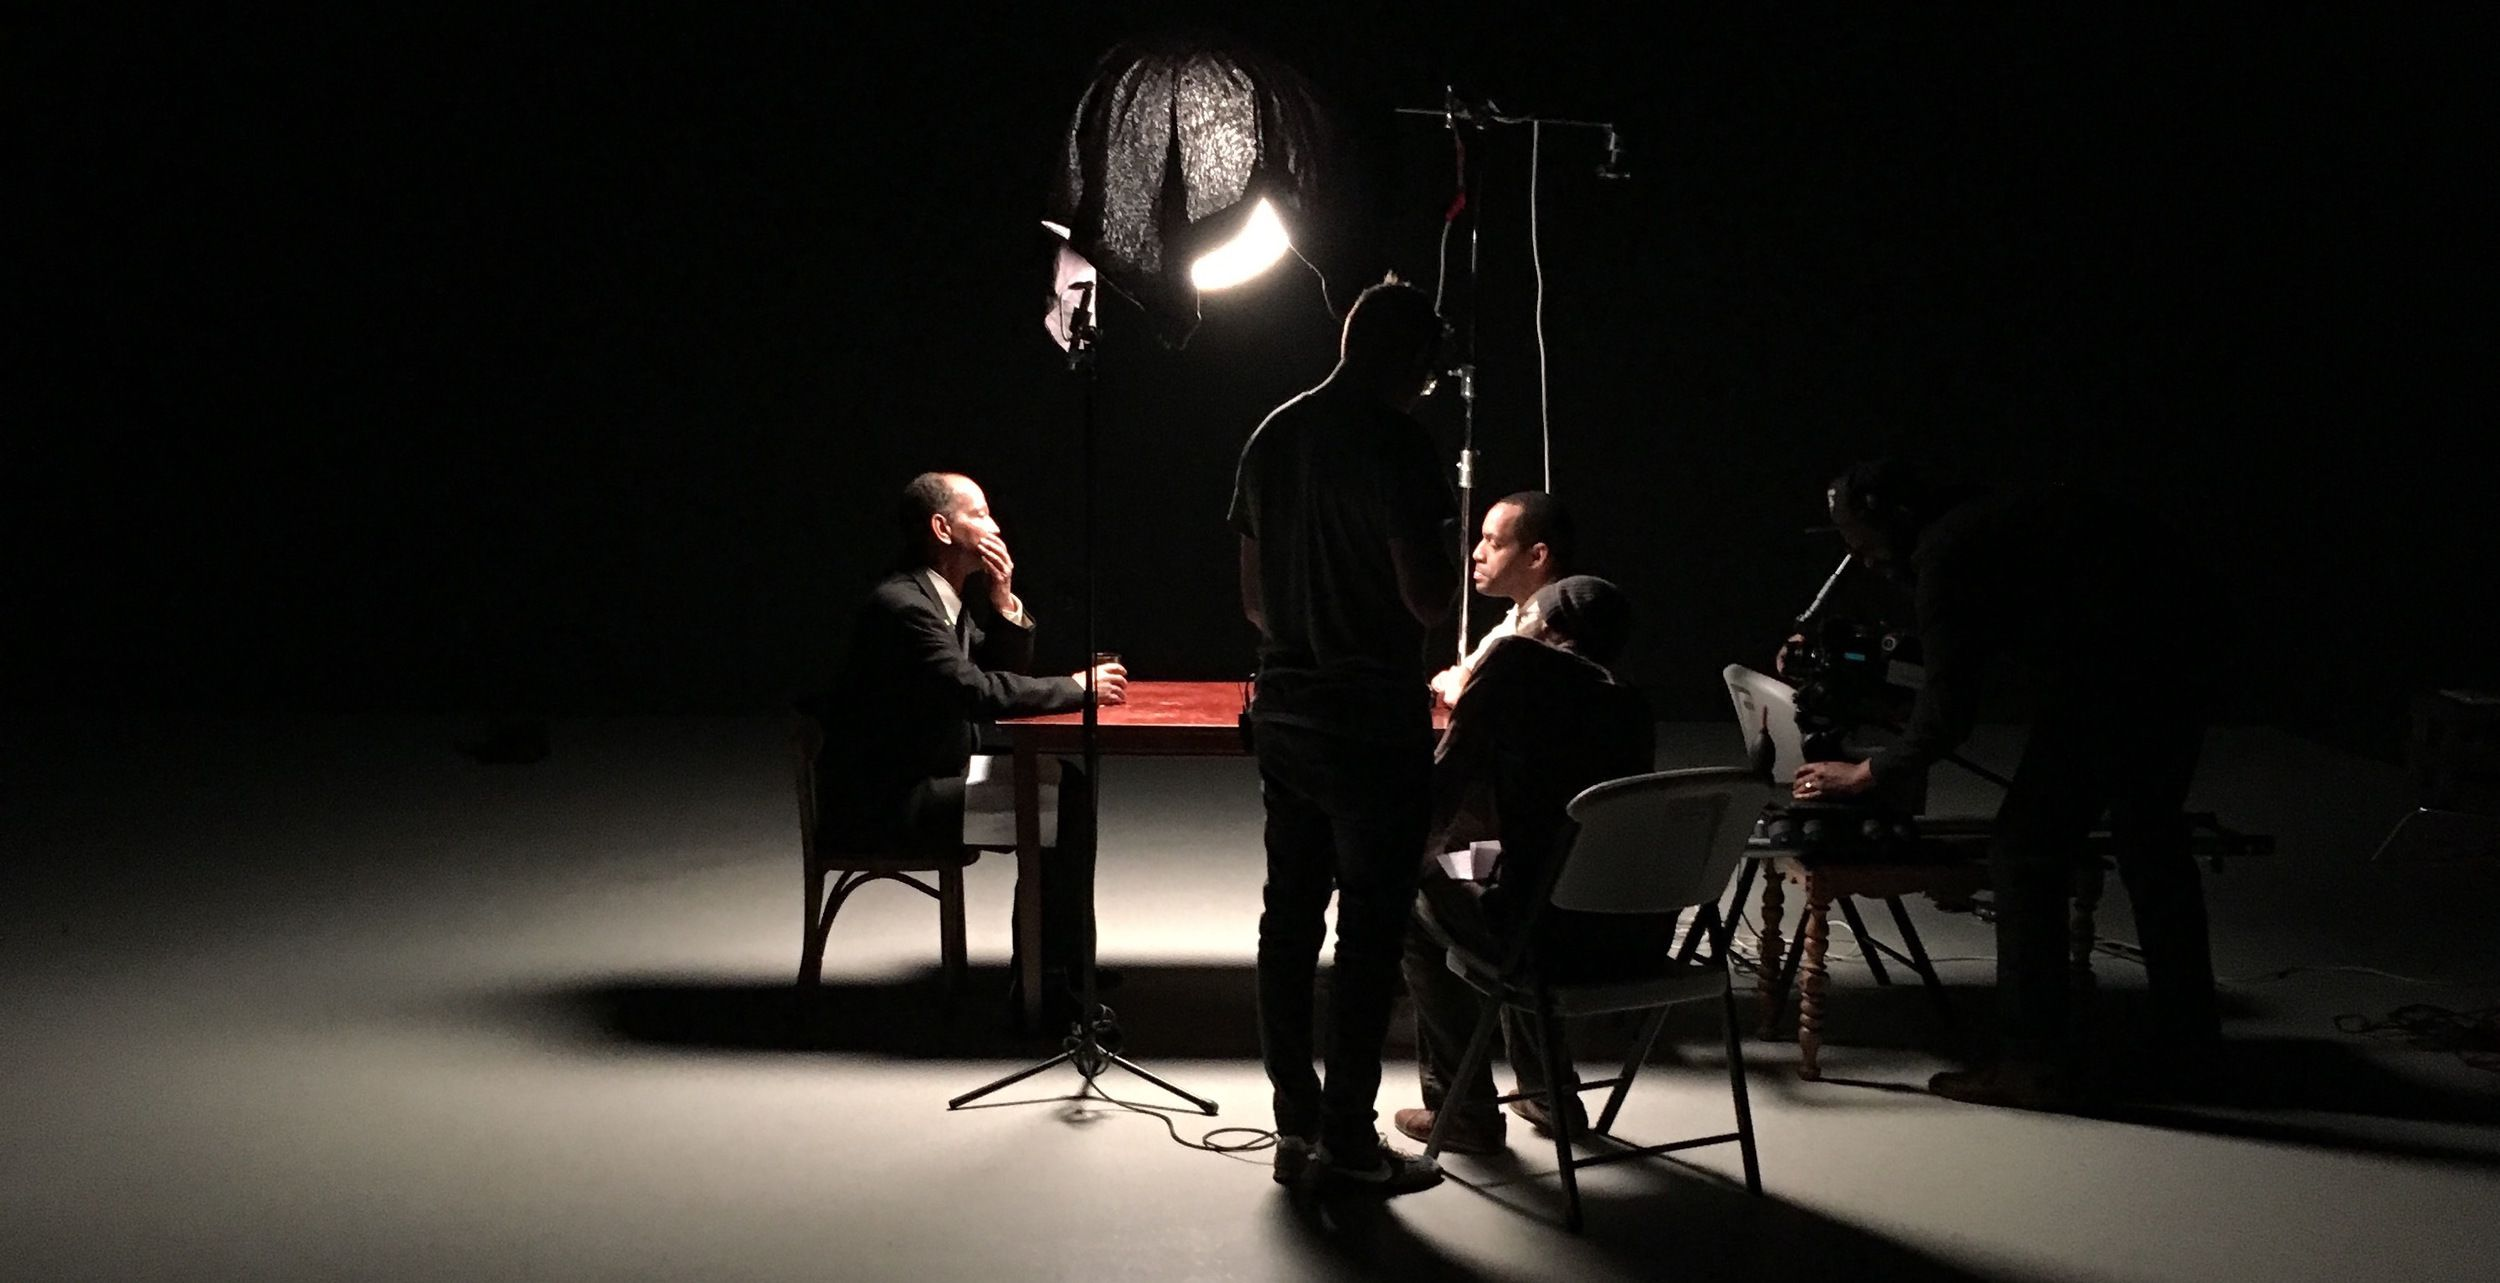 Filmmaking Case Study: How to Tell a Meaningful Story in